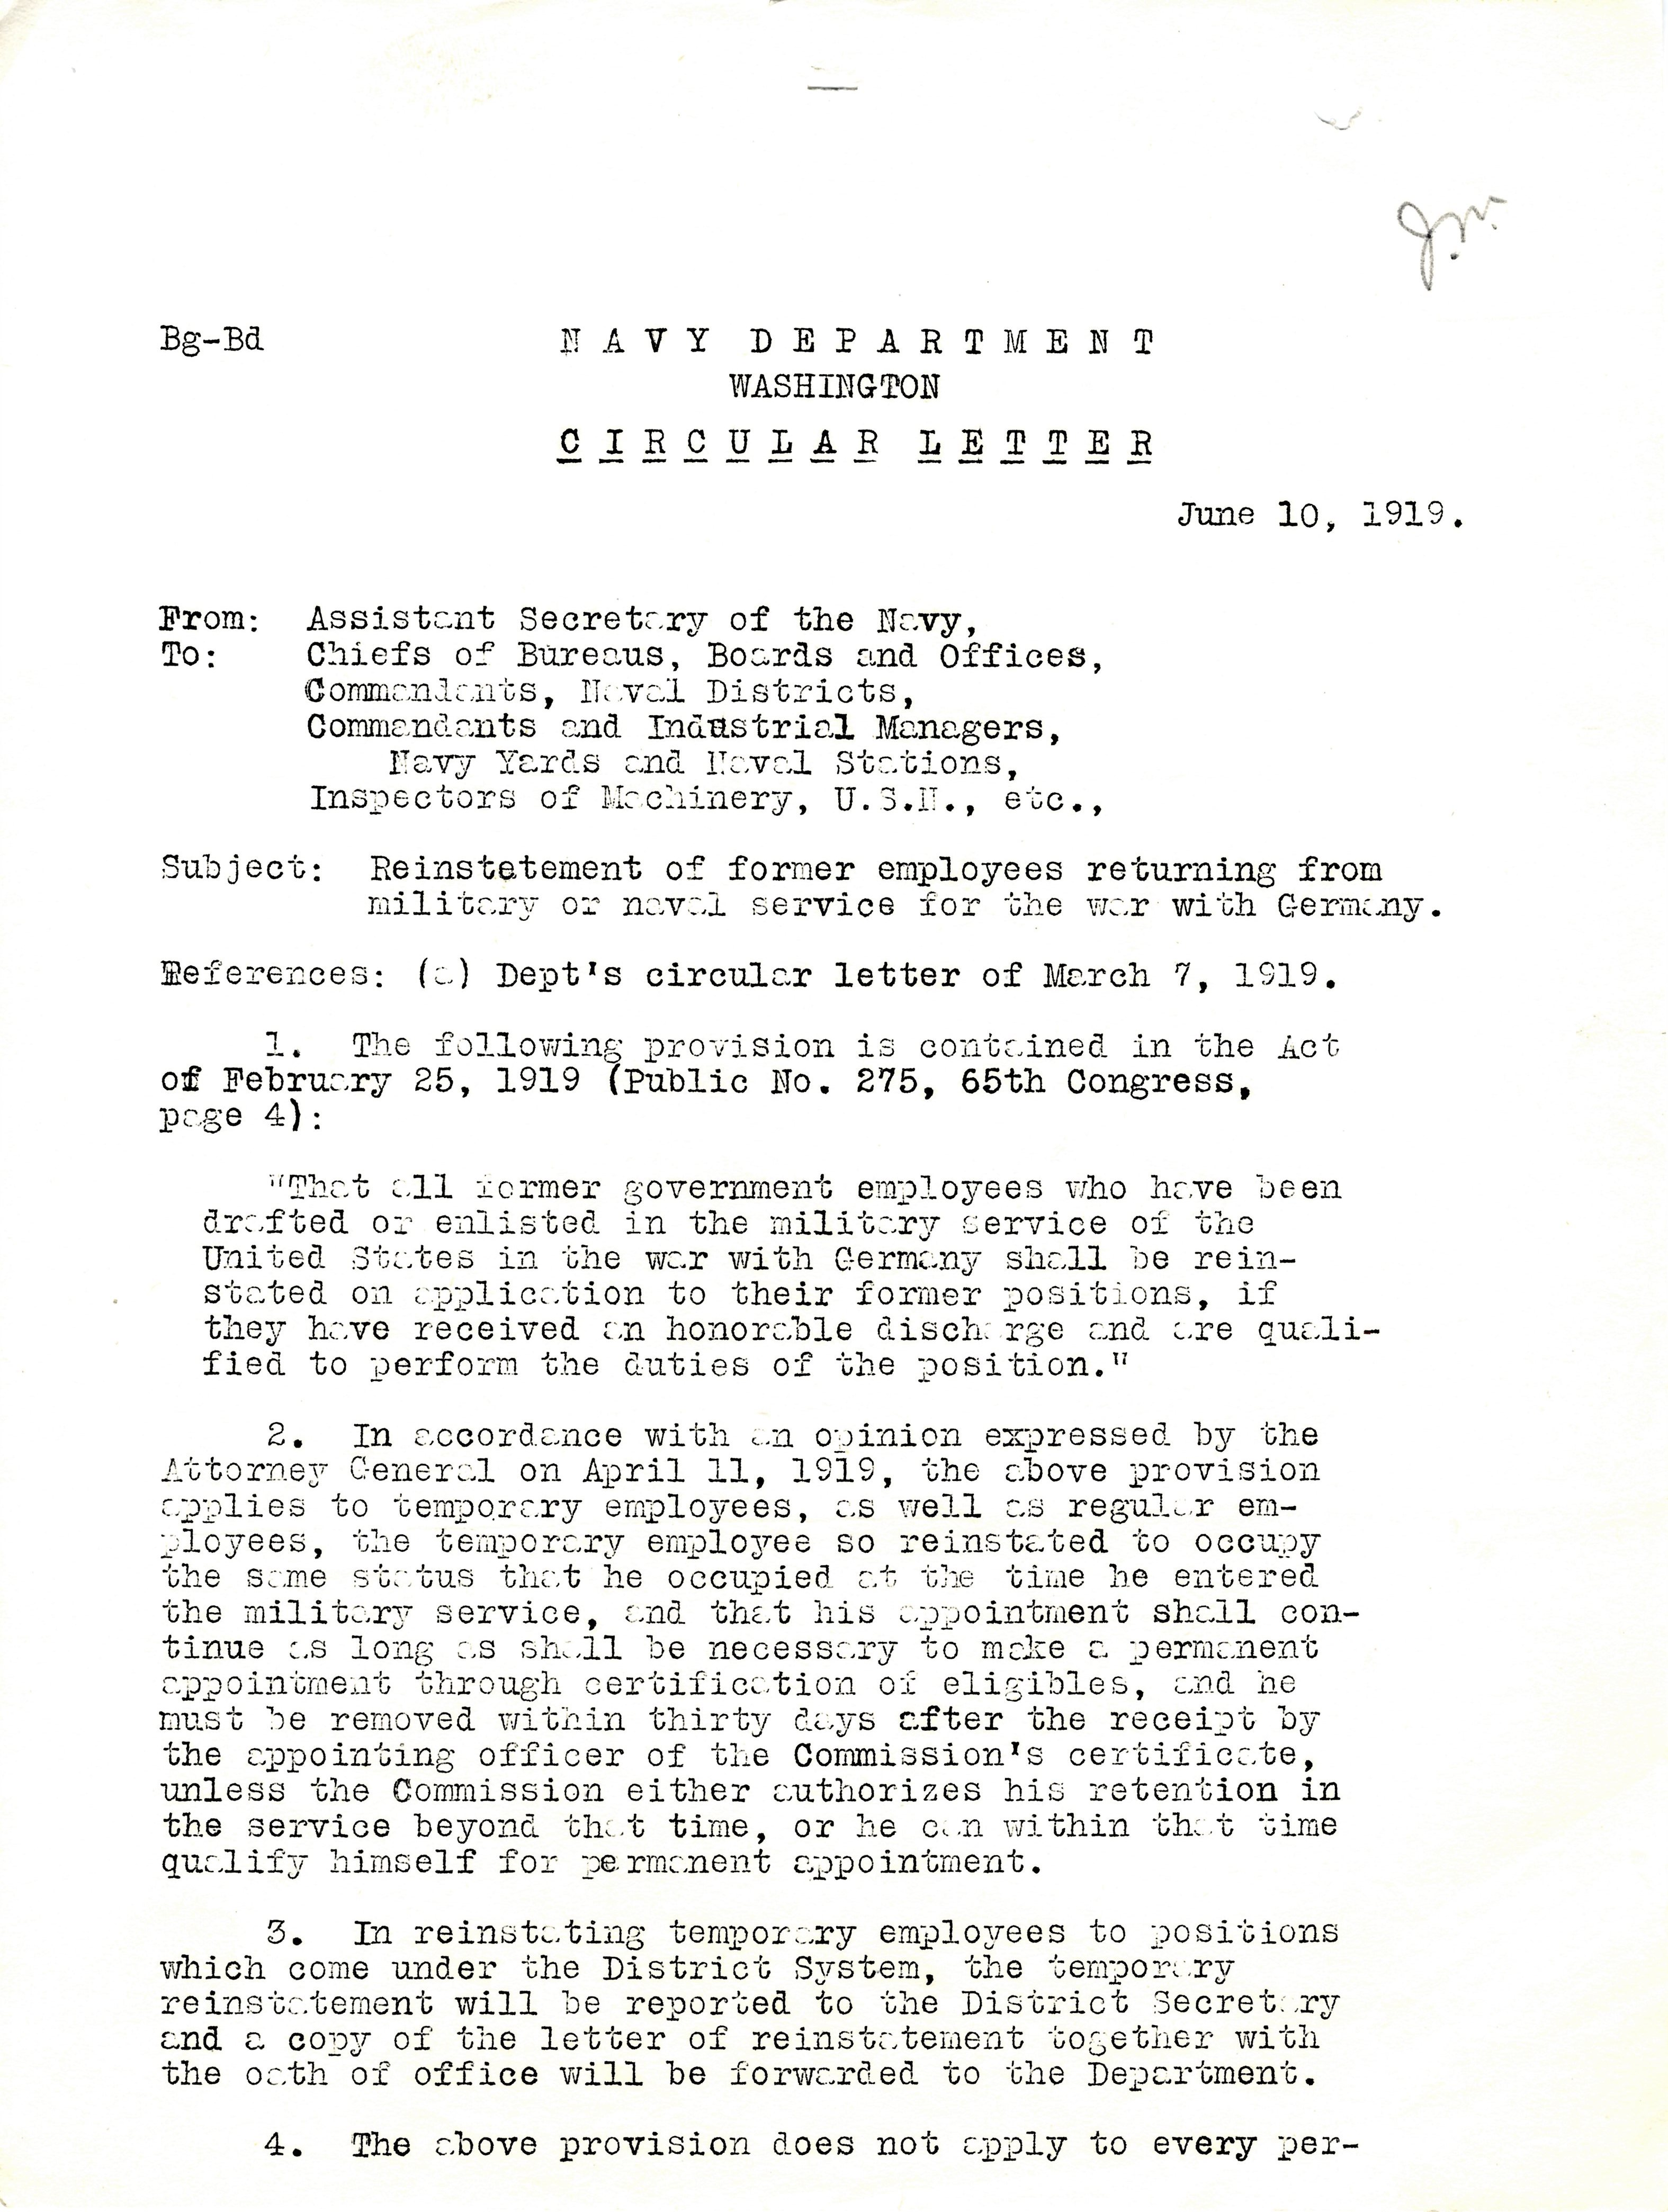 Circular letter from the assistant secretary of the navy regarding viewadd thecheapjerseys Images